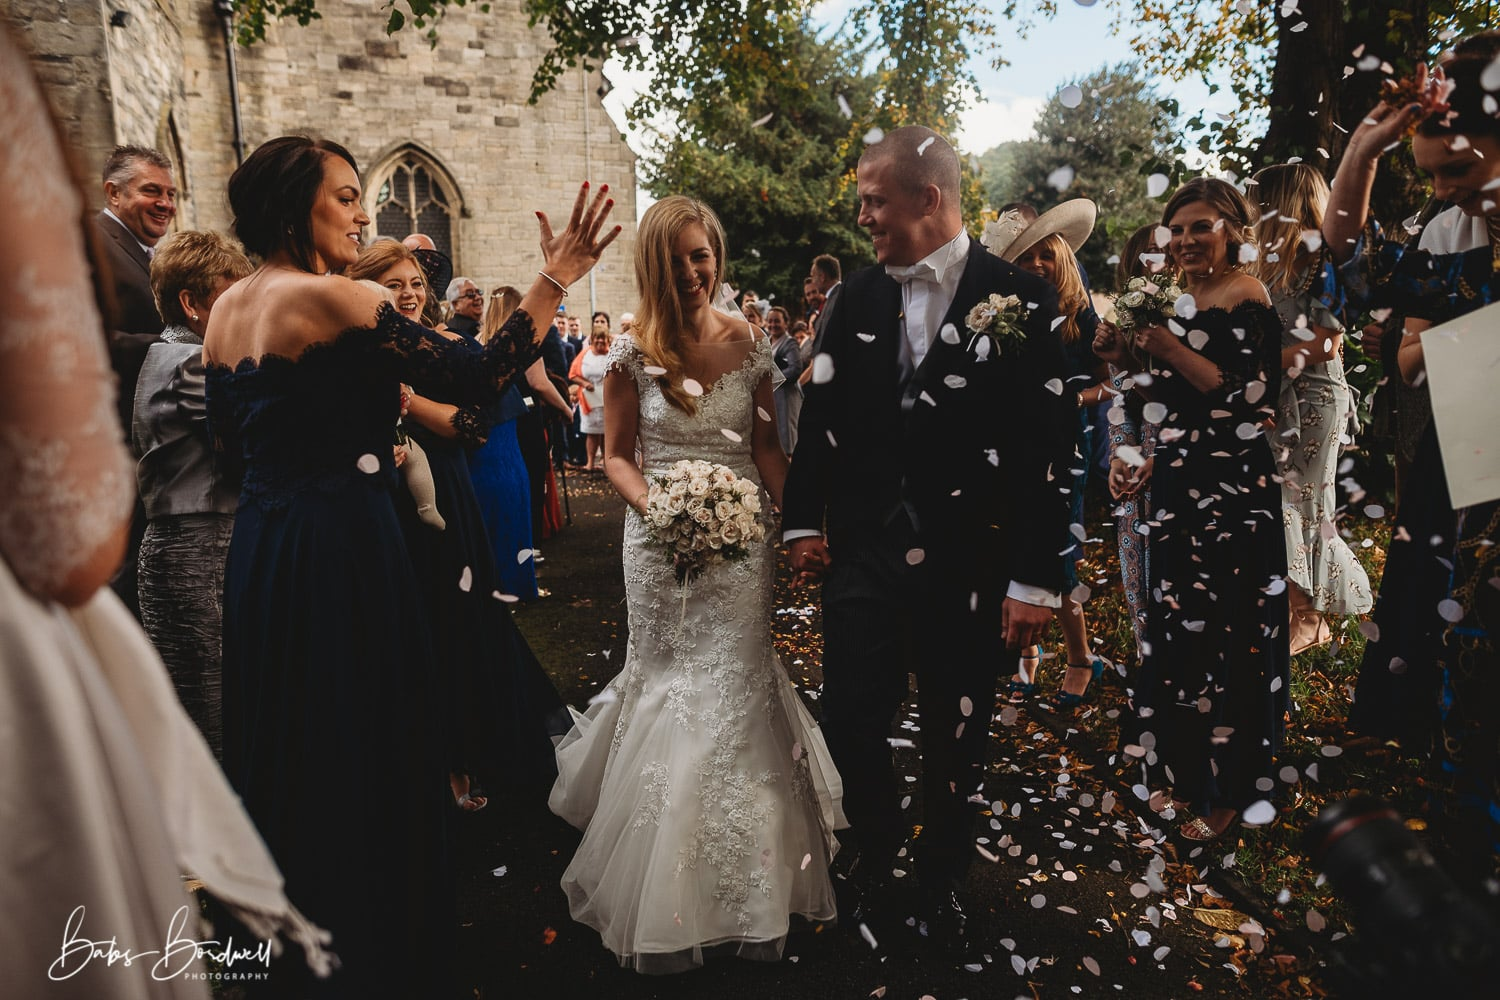 bride and groom walking through guests throwing confetti at them